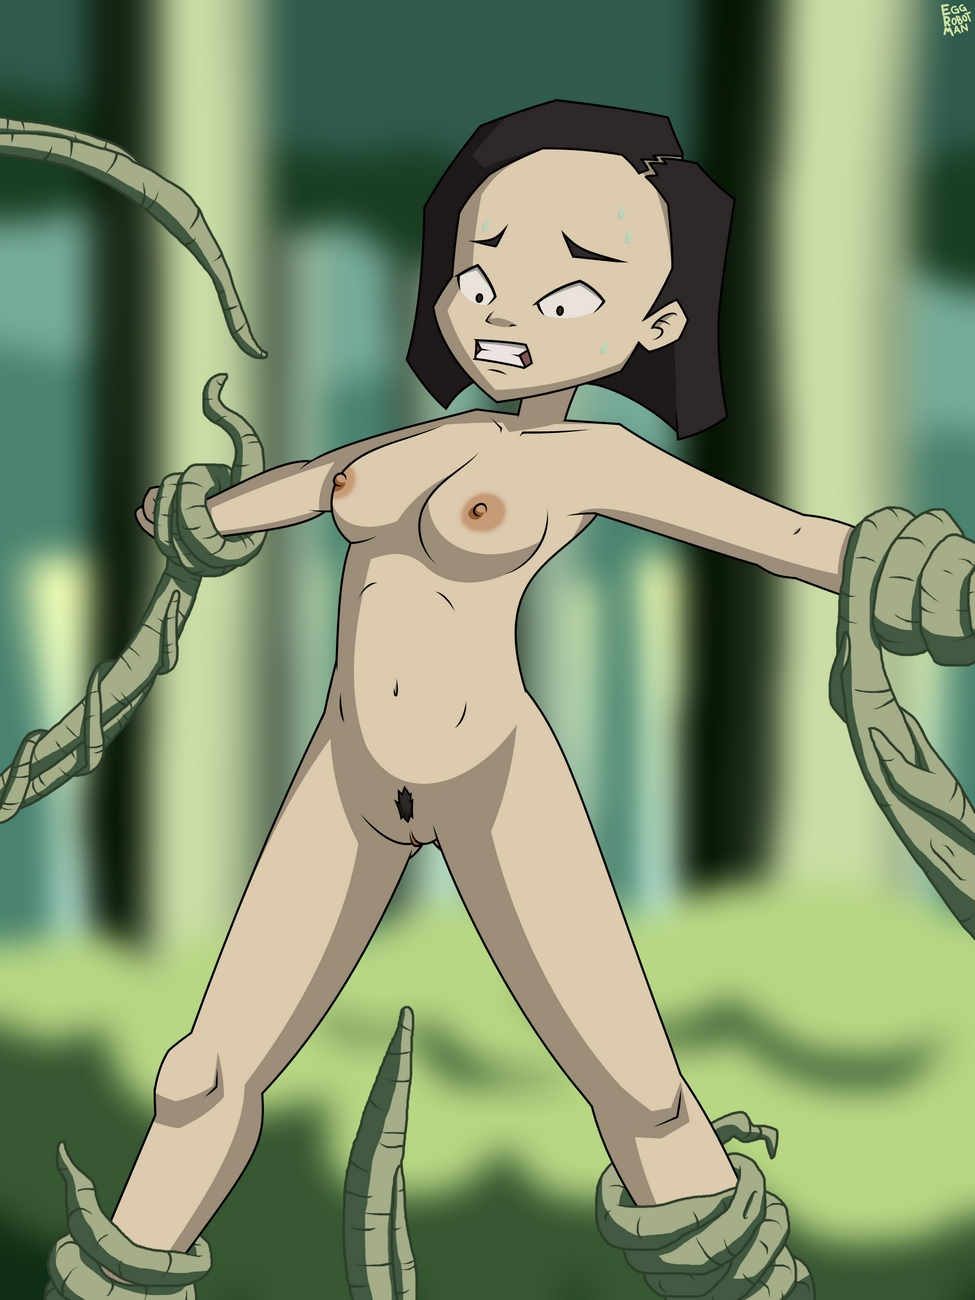 Yumi-Tentacle-Rape 6 free sex comic